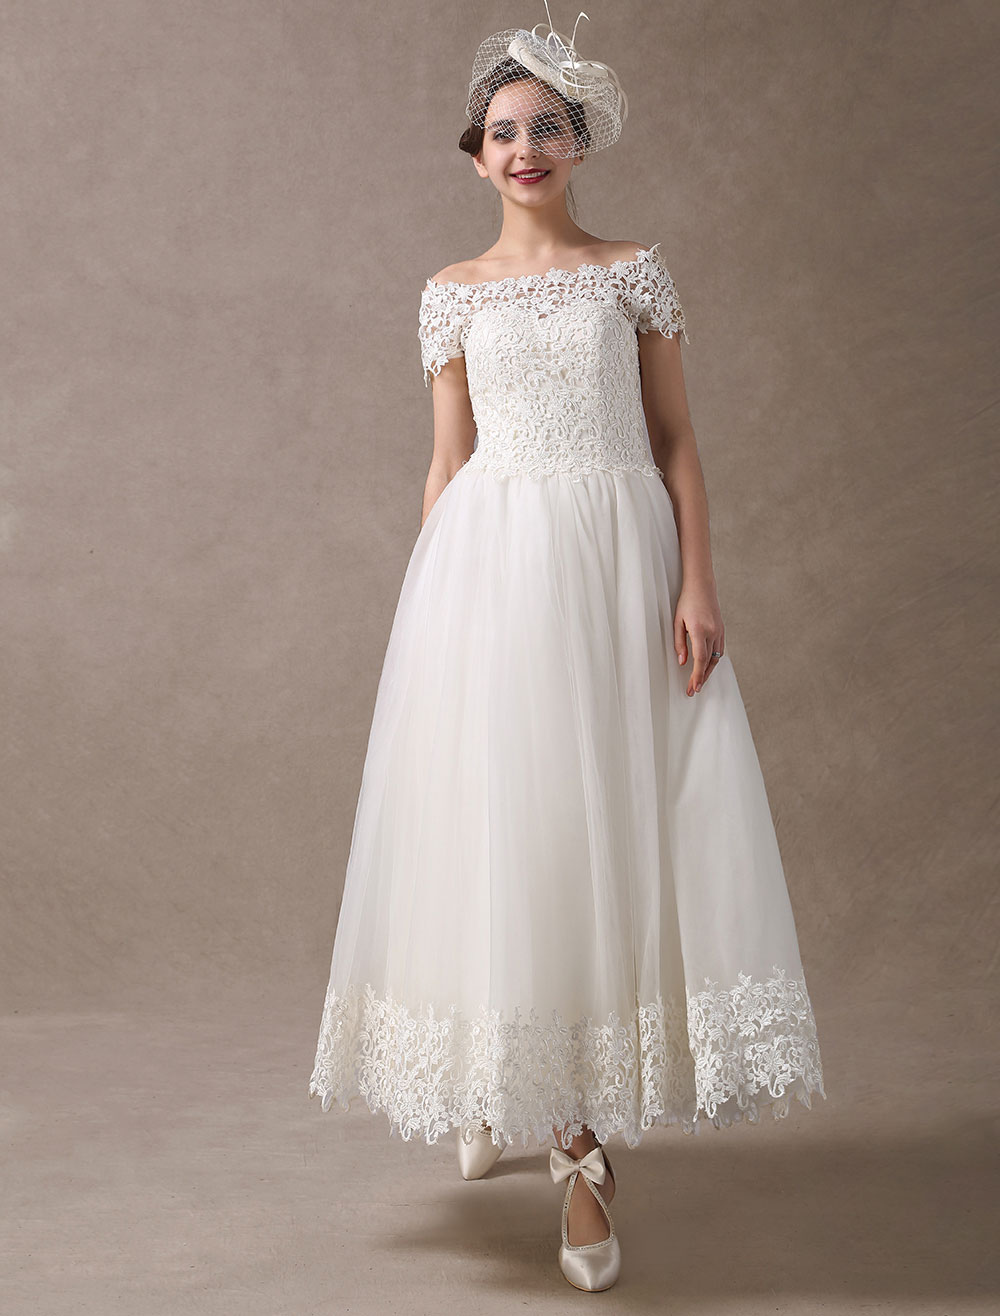 3a7324adff4 Vintage Wedding Dresses 1950s Off The Shoulder Ivory Lace Short ...